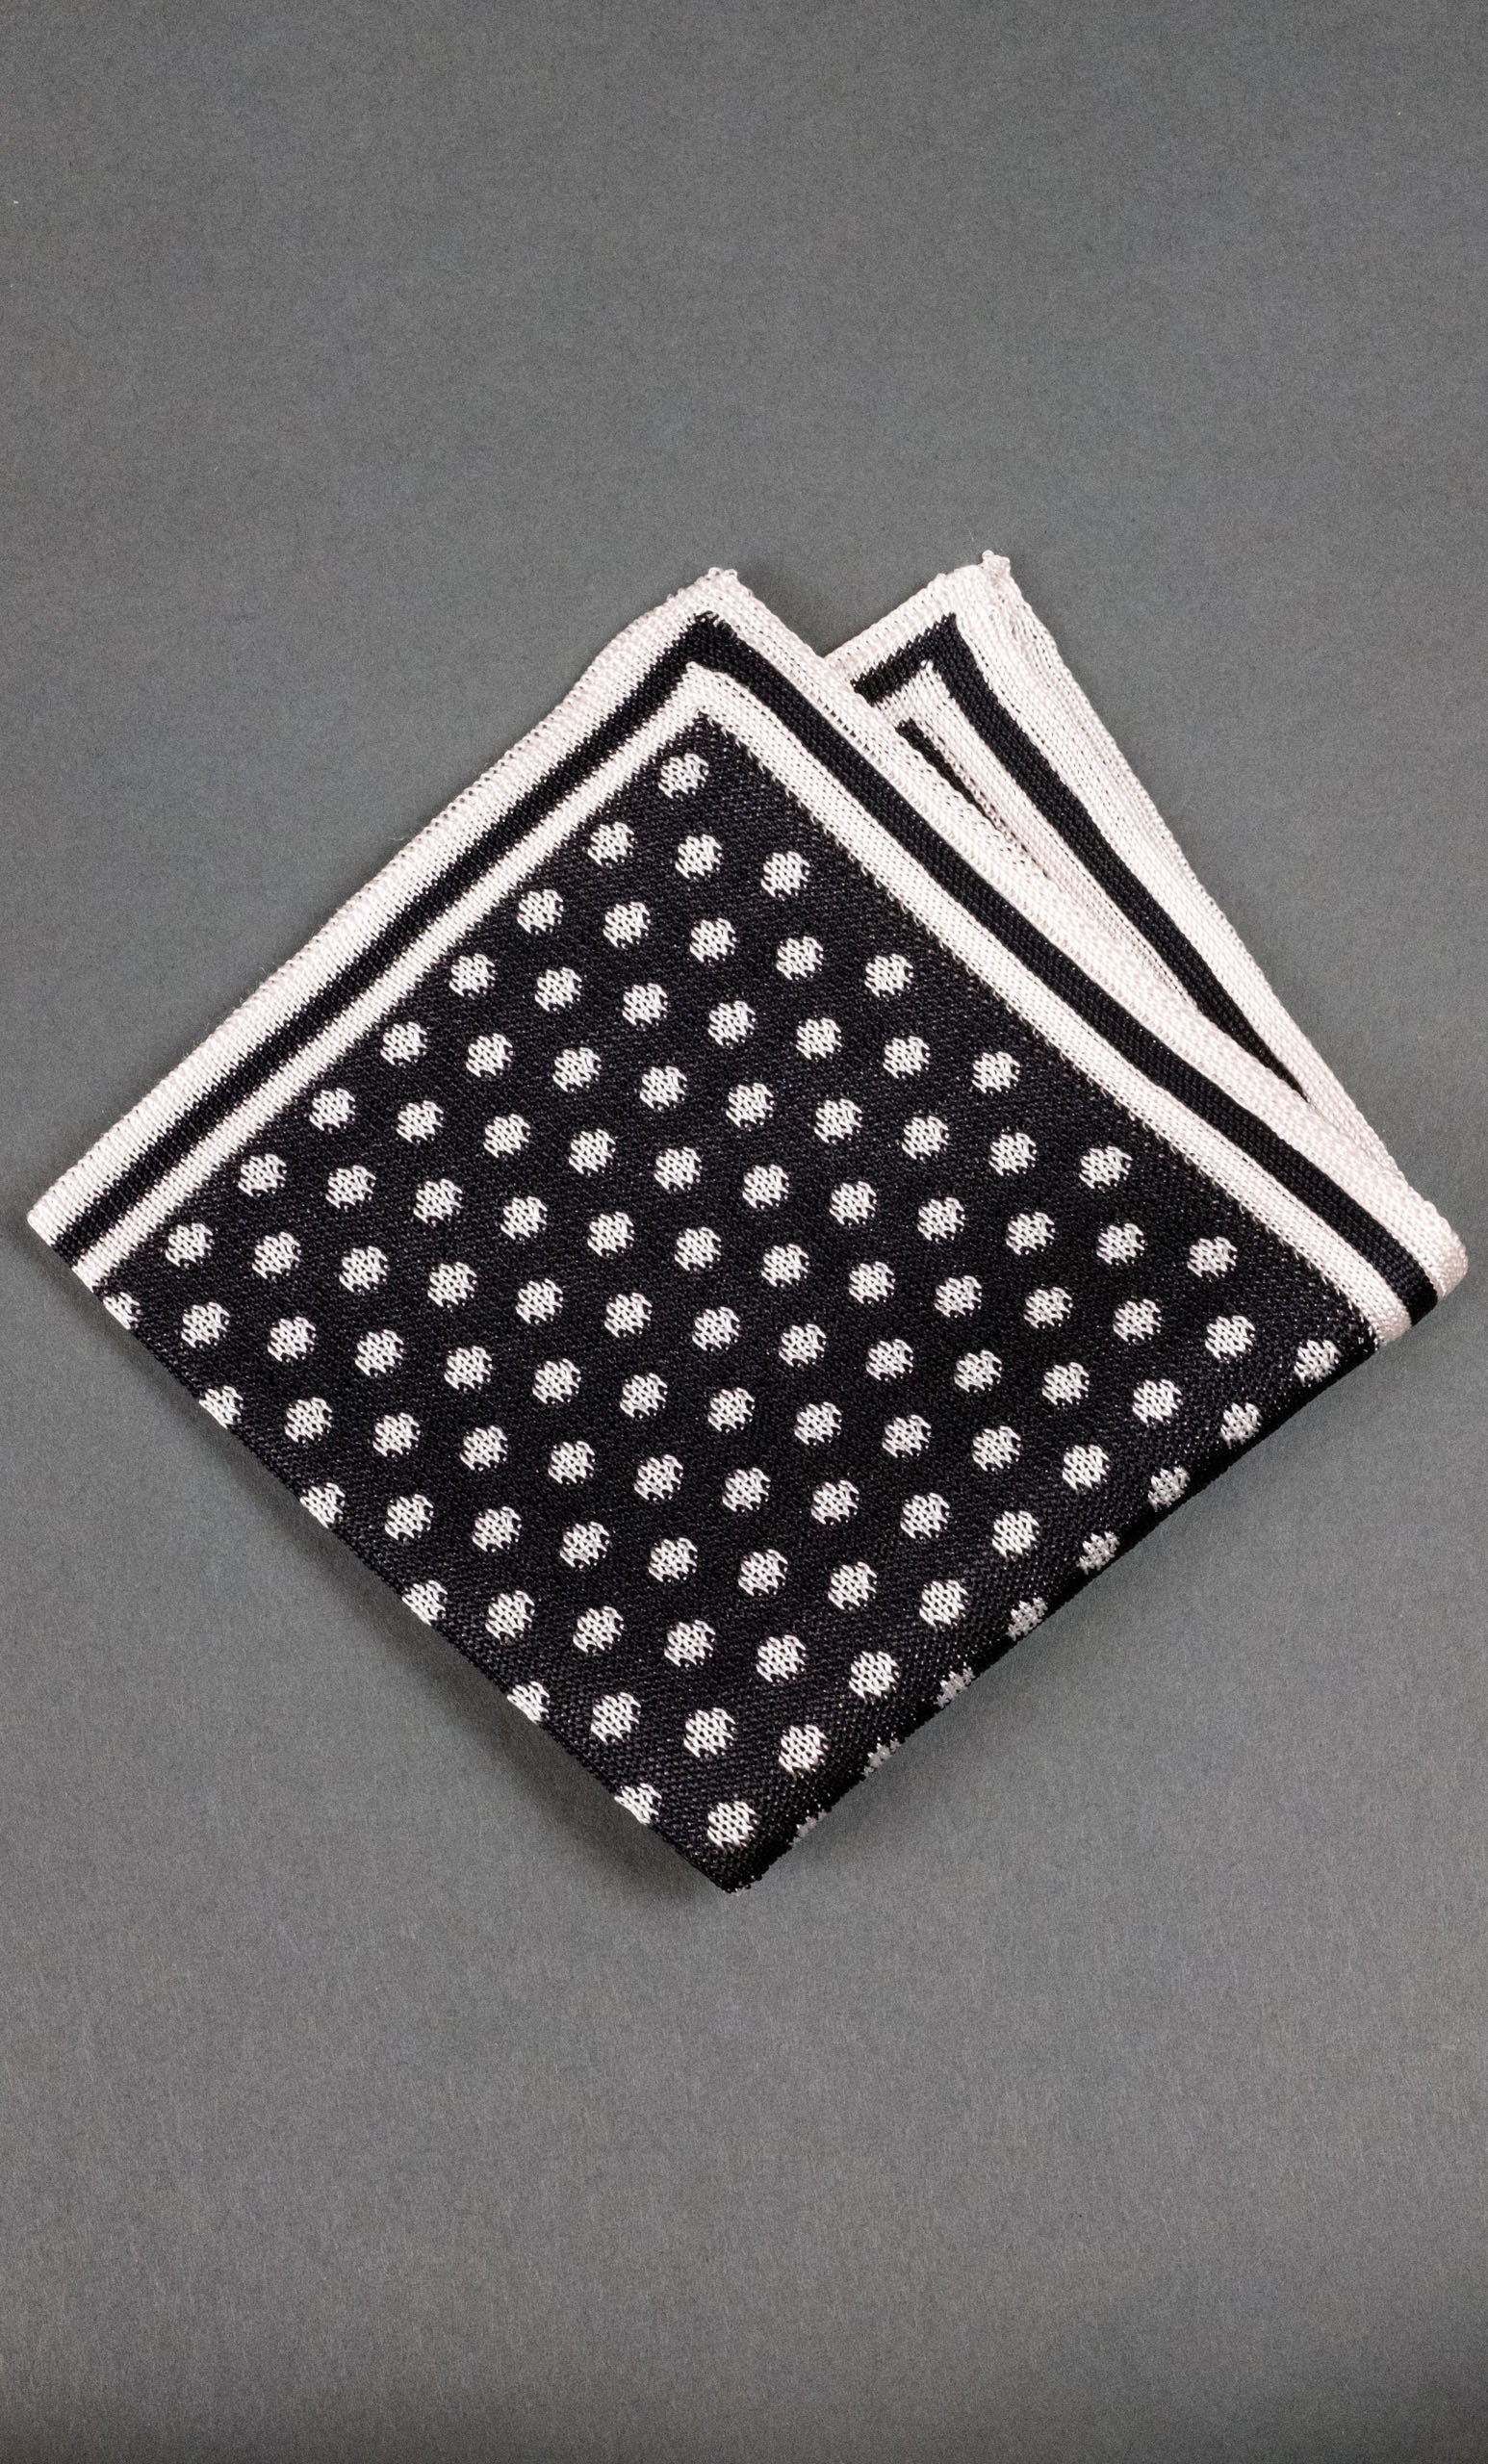 Black With White Dots Knitted Silk Pocket Square